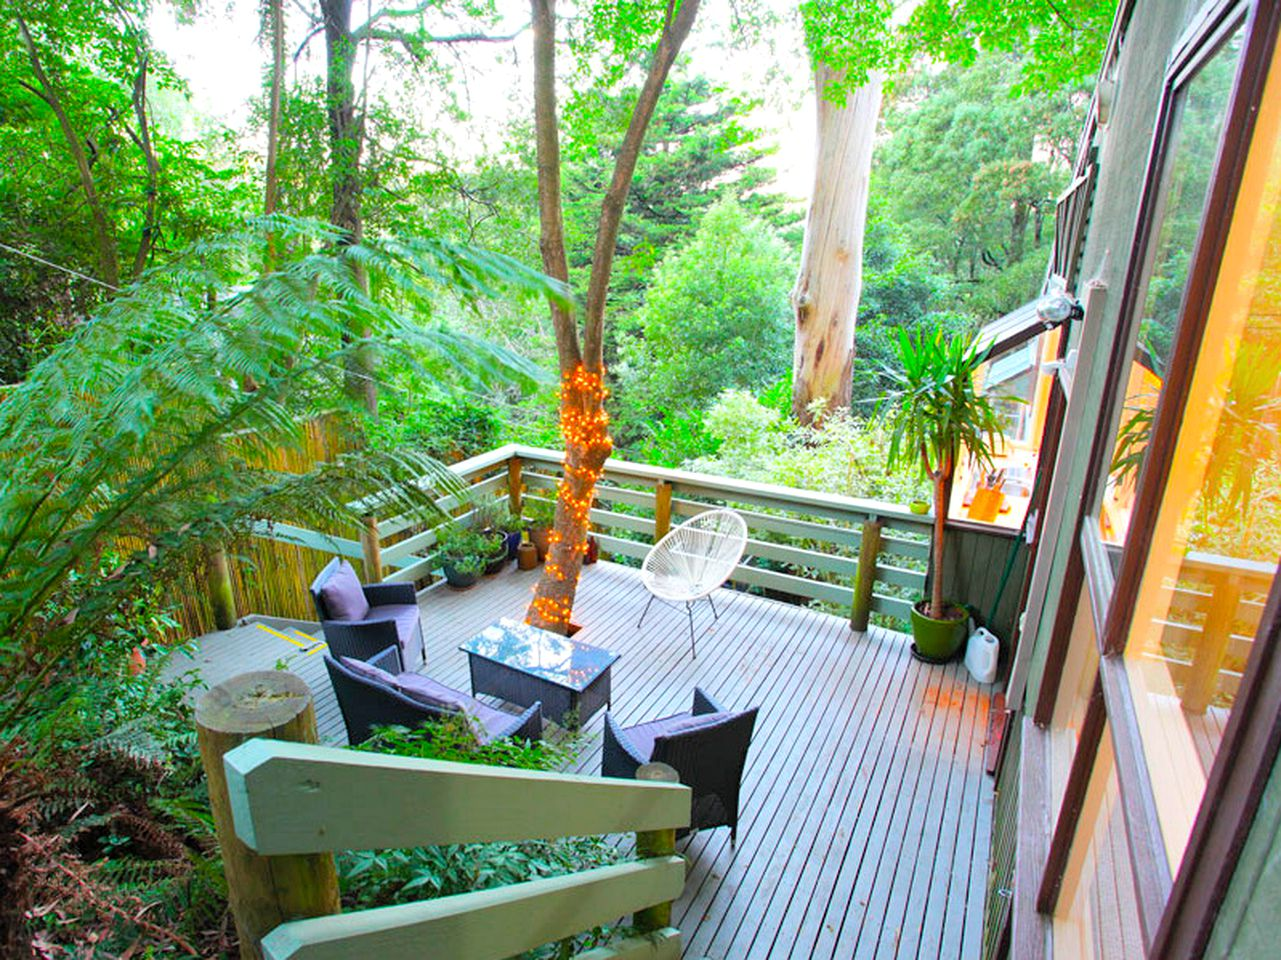 The gorgeous deck set among the tree canopy. This Sassafras accommodation is perfect for tree house glamping in Victoria.